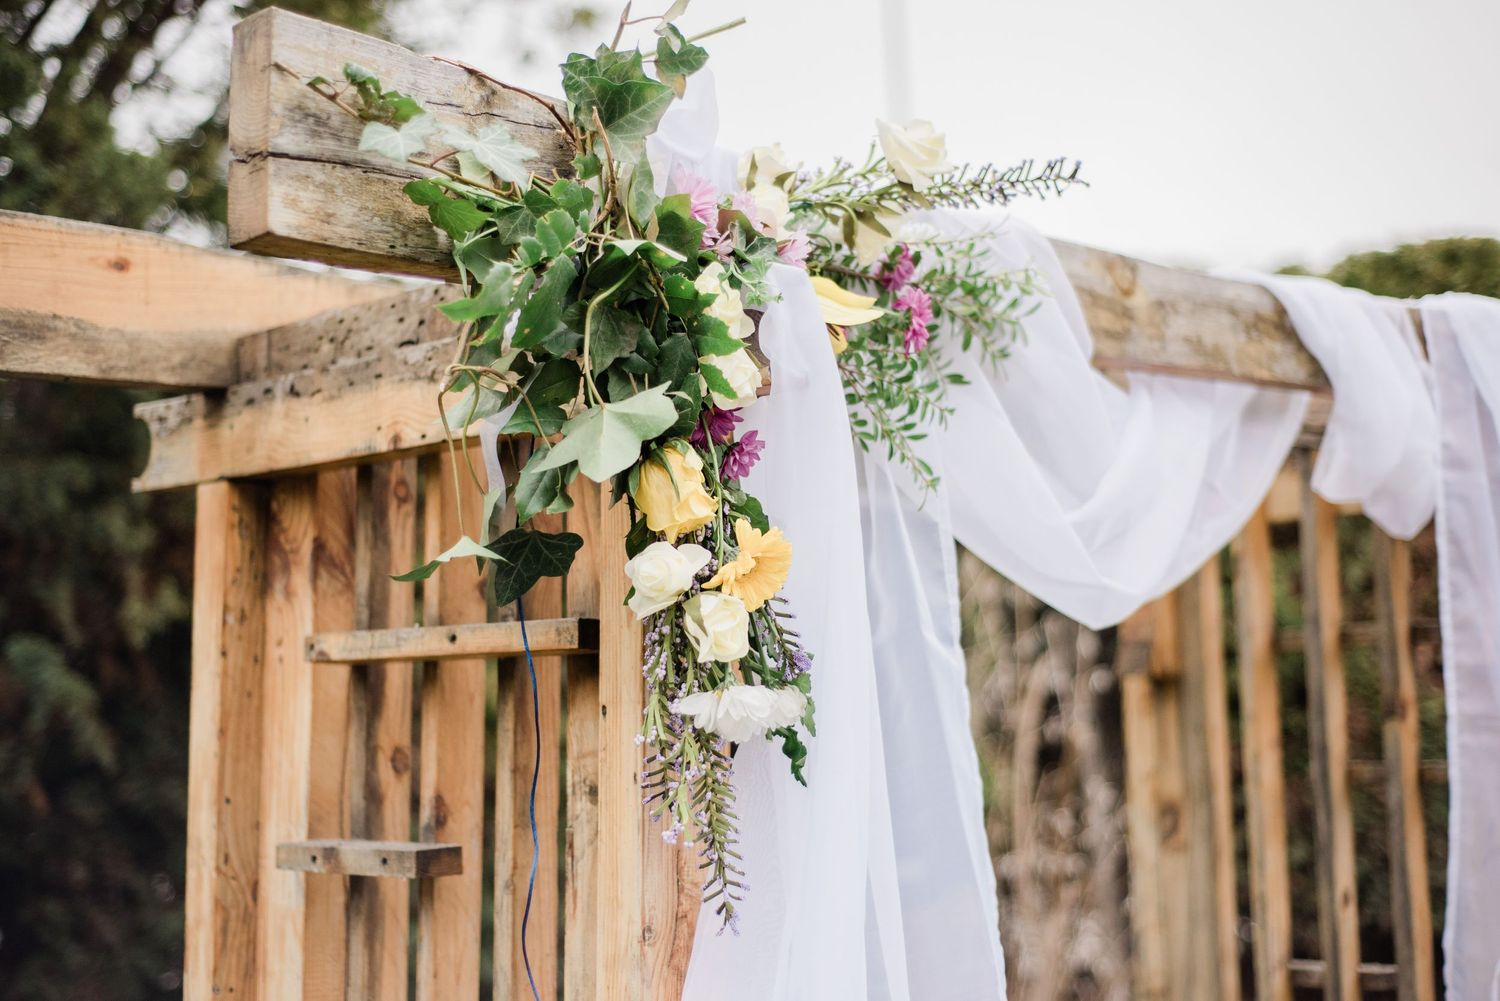 celebrate-your-heritage-on-your-wedding-day-embrace-your-culture-happy-bride-and-groom-small-wedding-arbor-floral